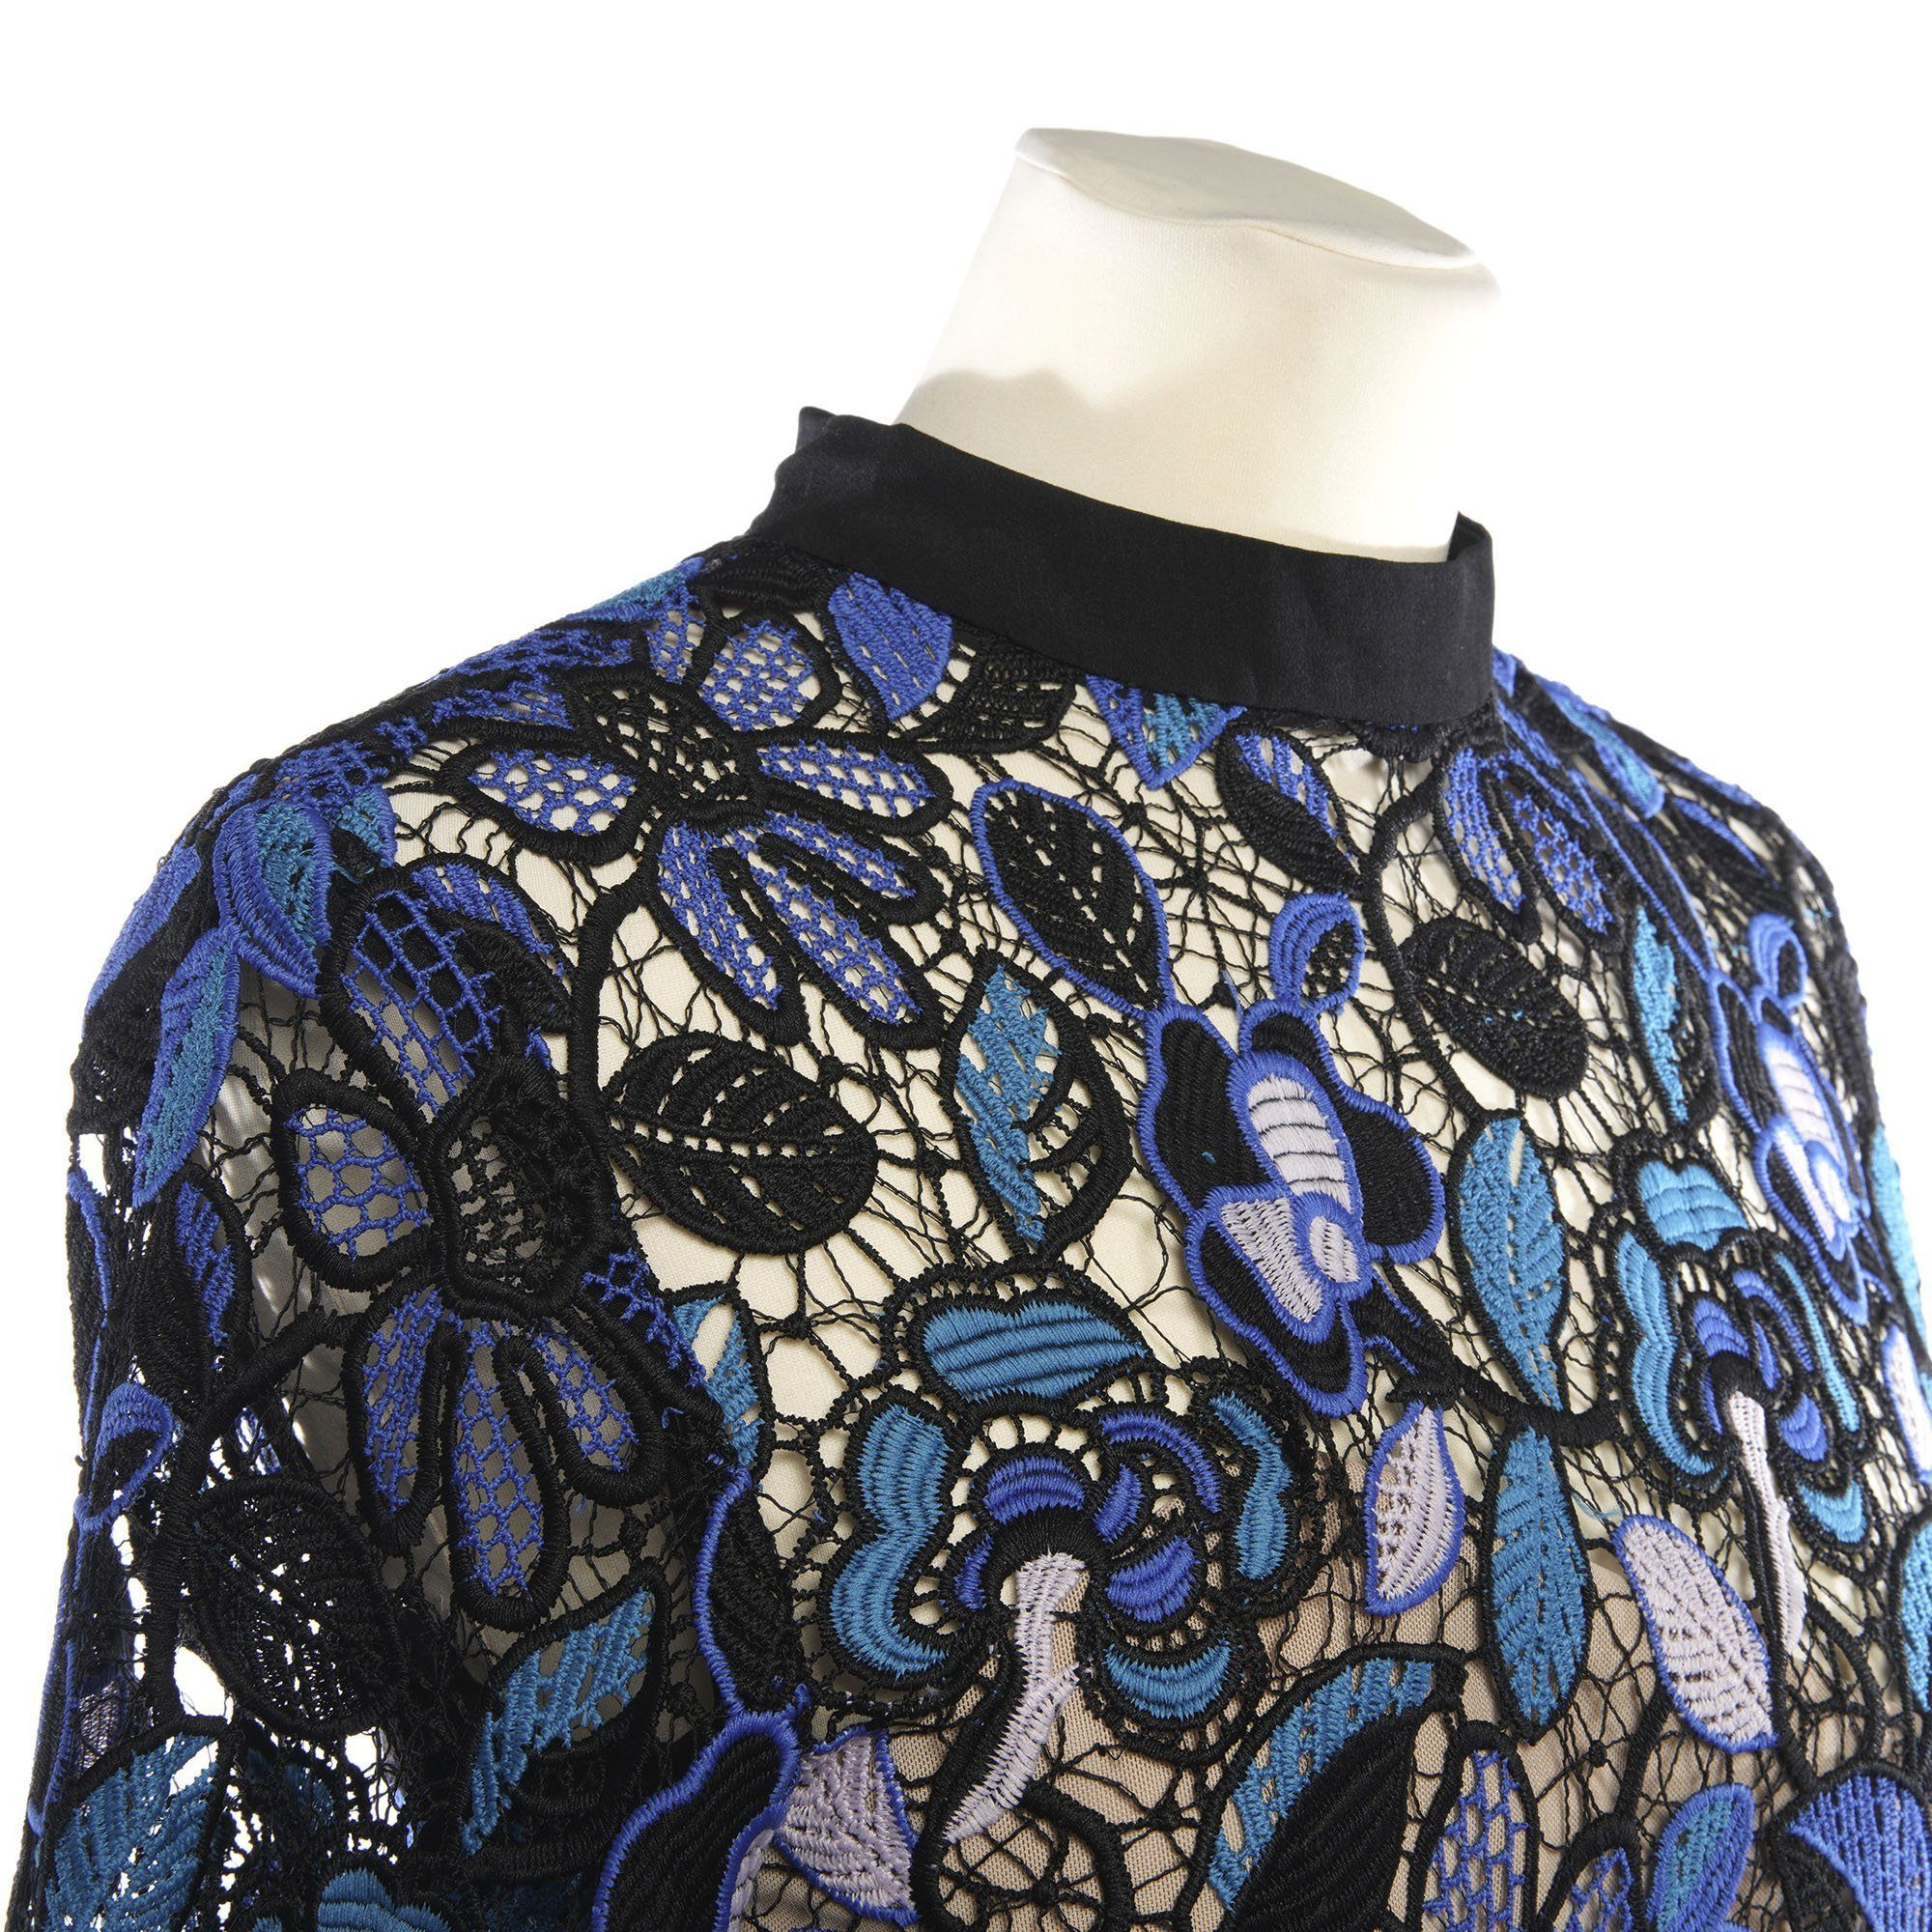 Self-portrait Black and Blue Embroidered Long Sleeve Top